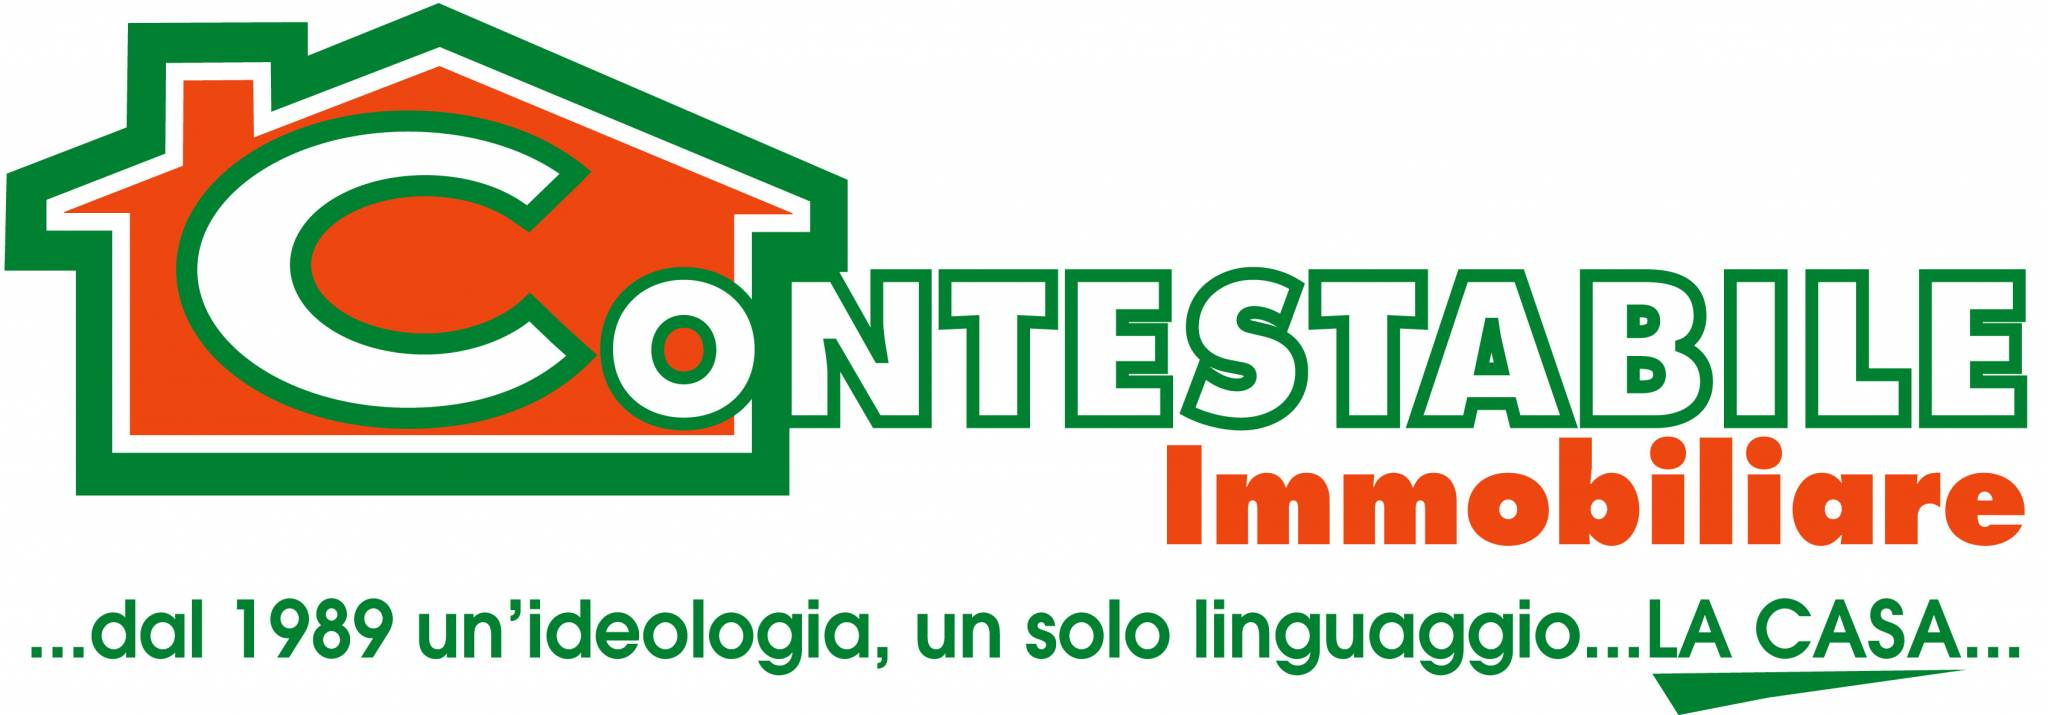 CONTESTABILE IMMOBILIARE